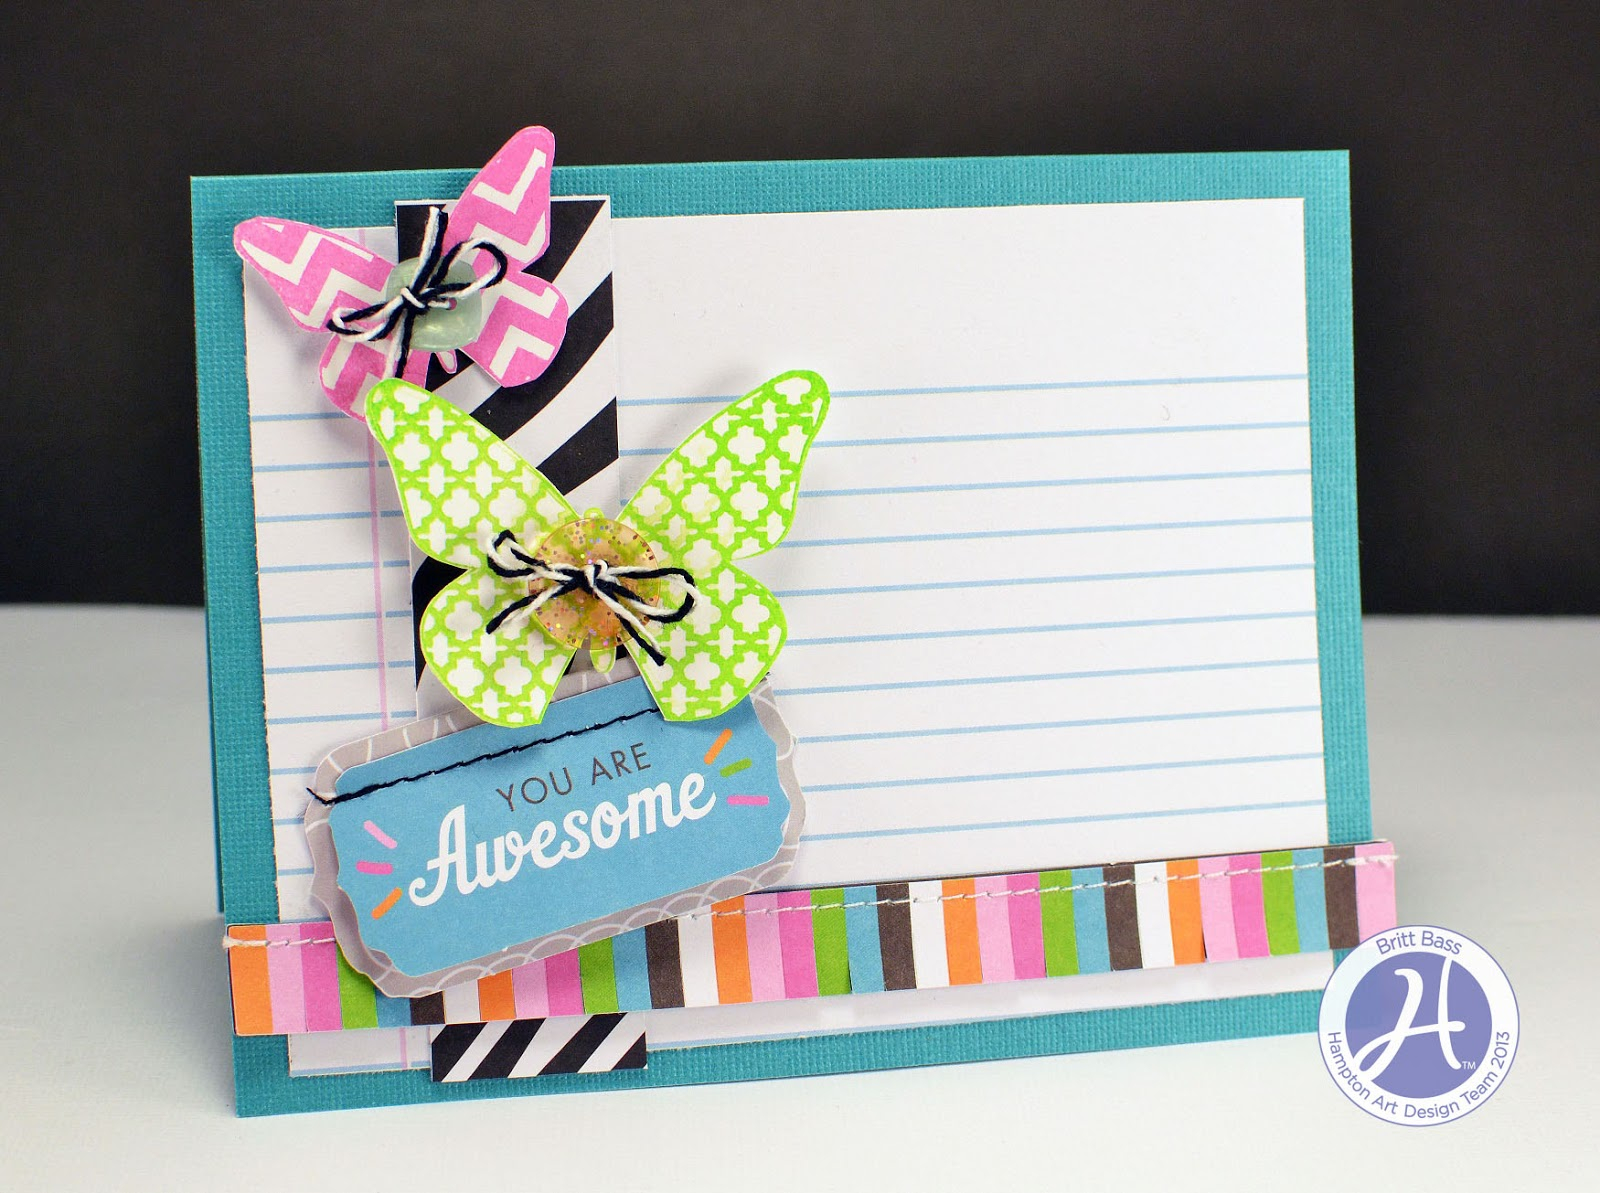 Card Making Ideas For Friends Birthday Handmade Birthday Card Ideas For Best Friend Girl Simple Envelopes